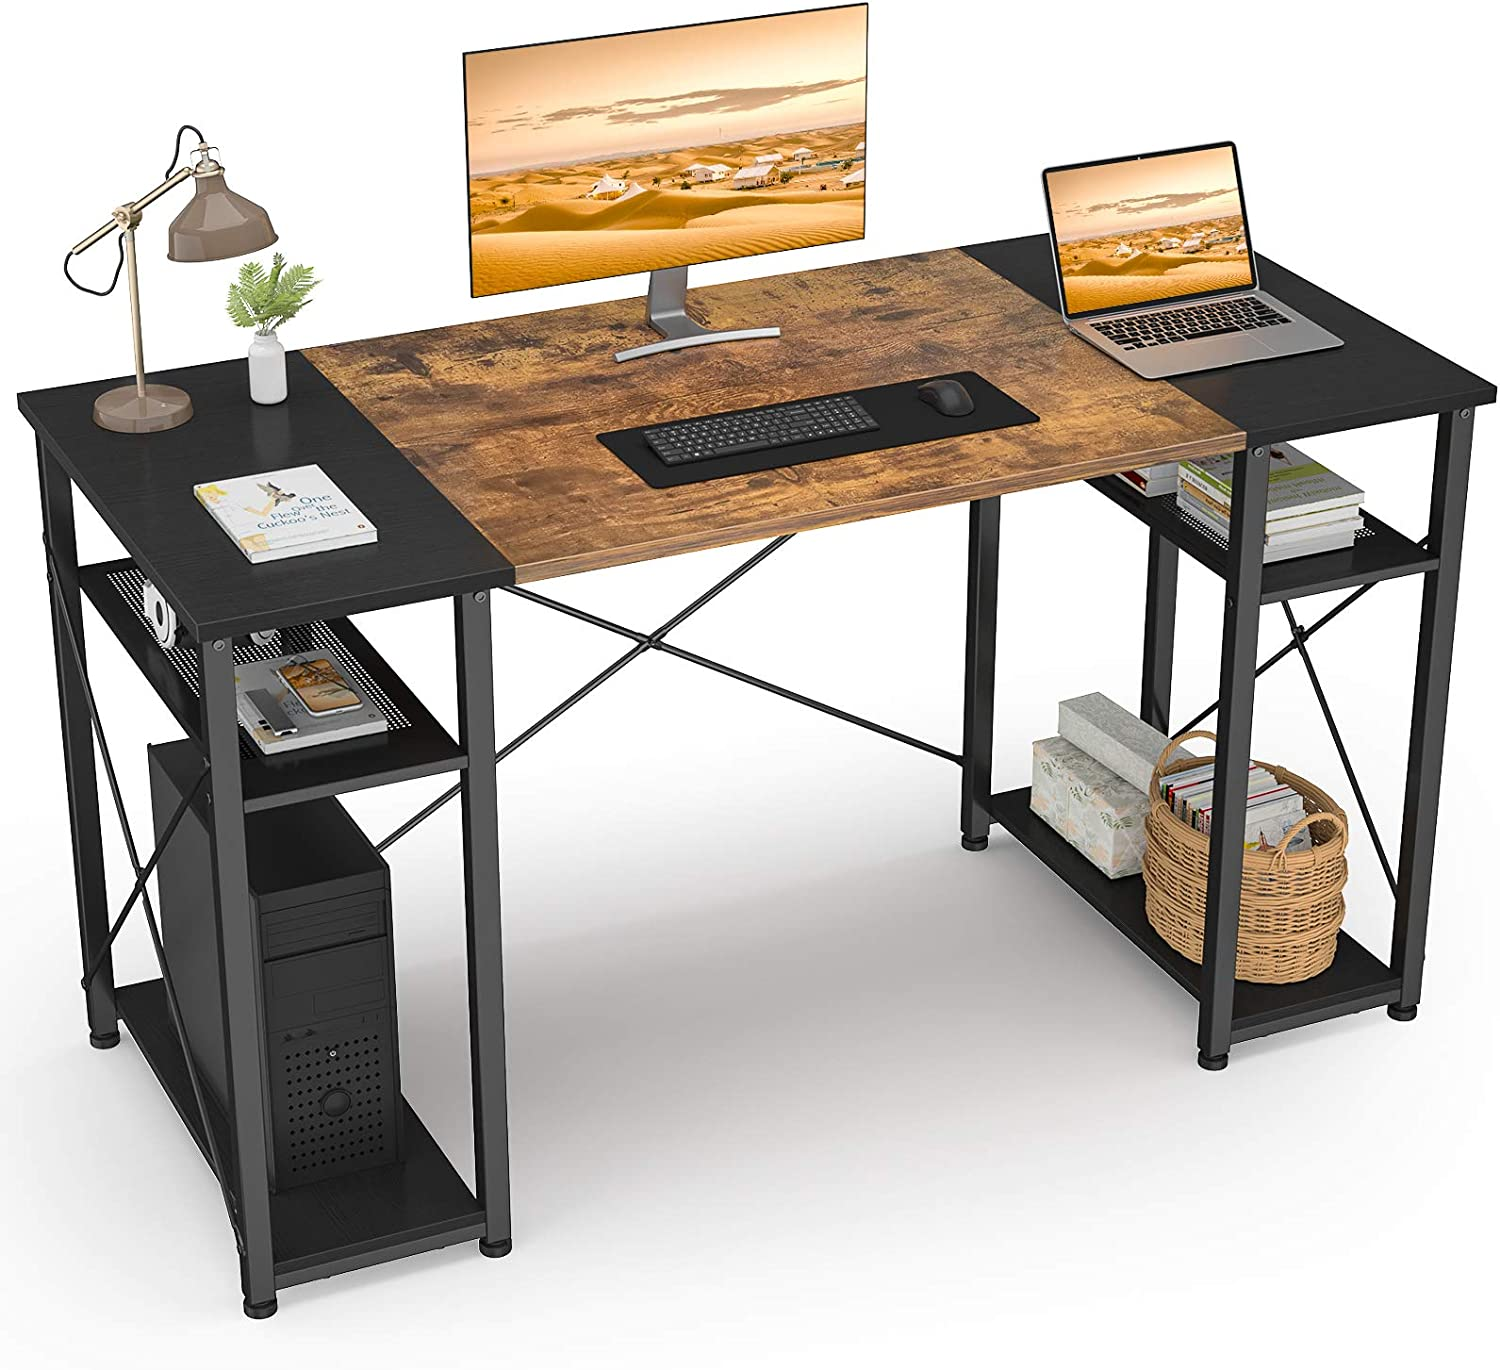 47 Inch Computer Desk with Shelves, Ecoprsio Home Office Desk Small Study Writing Table, Industrial Sturdy Modern Table Simple Laptop PC Desk with Splice Board, Rustic and Black